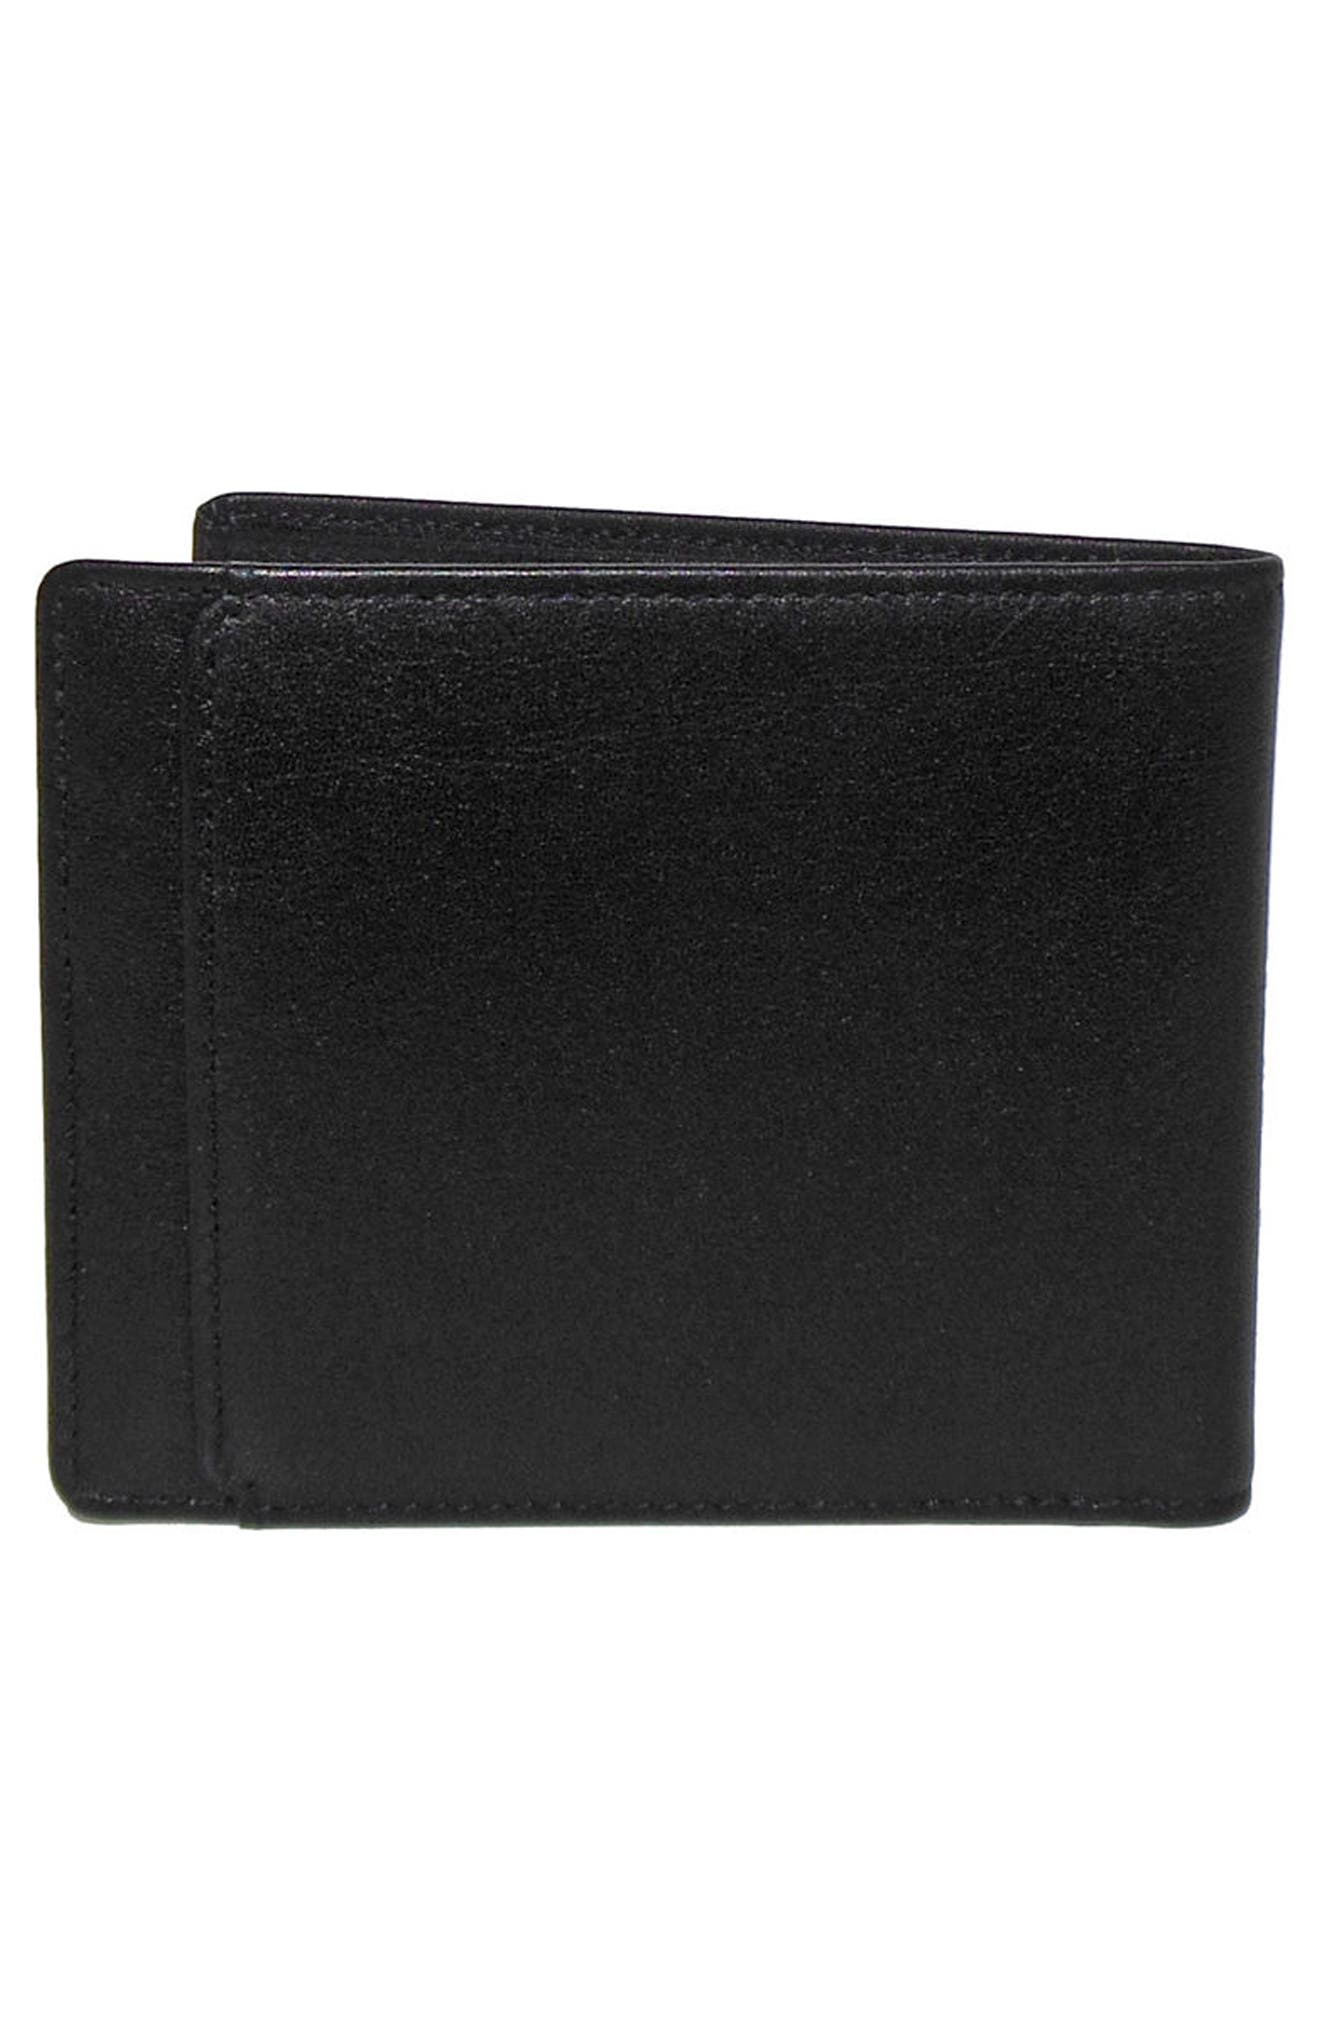 Grant Leather Wallet,                             Alternate thumbnail 3, color,                             001